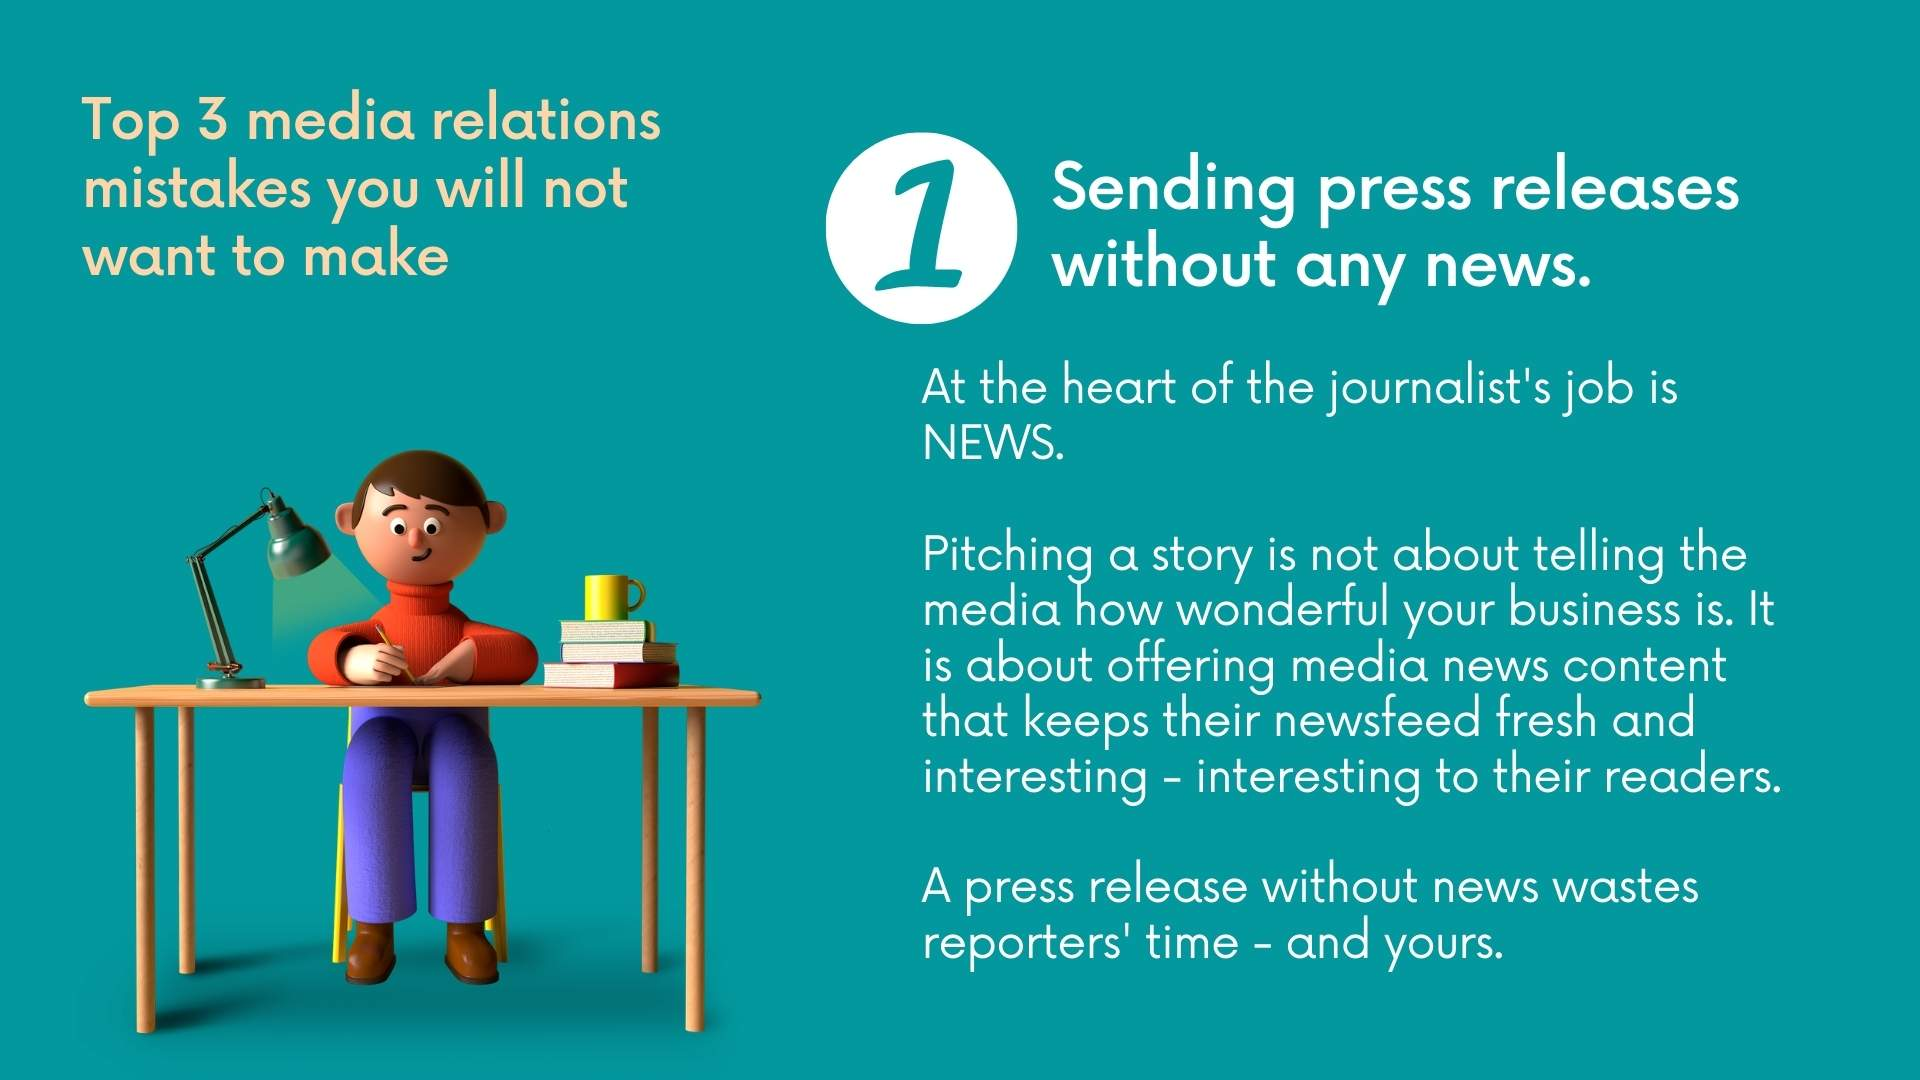 3 top Media Relations mistakes you will not want to make